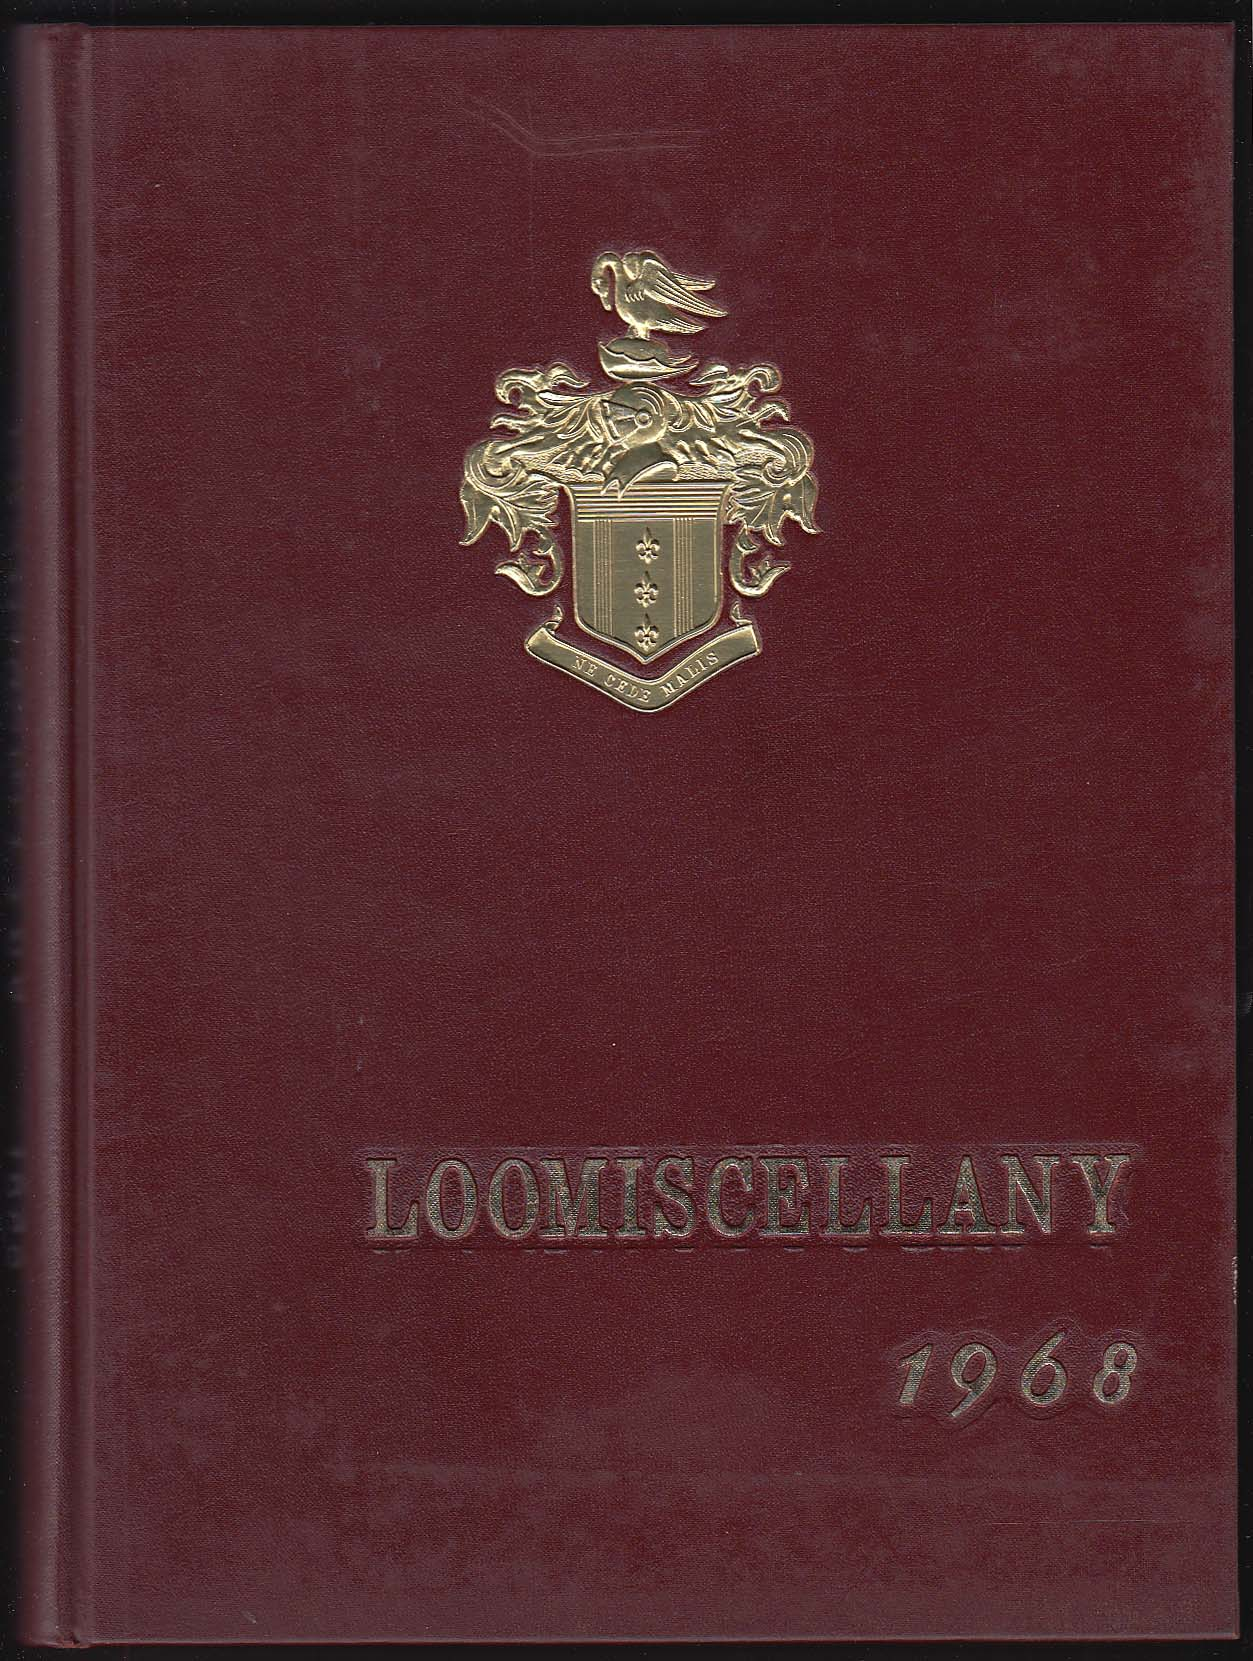 Image for Loomiscellany 1968 Yearbook Loomis School Windsor Connecticut CT